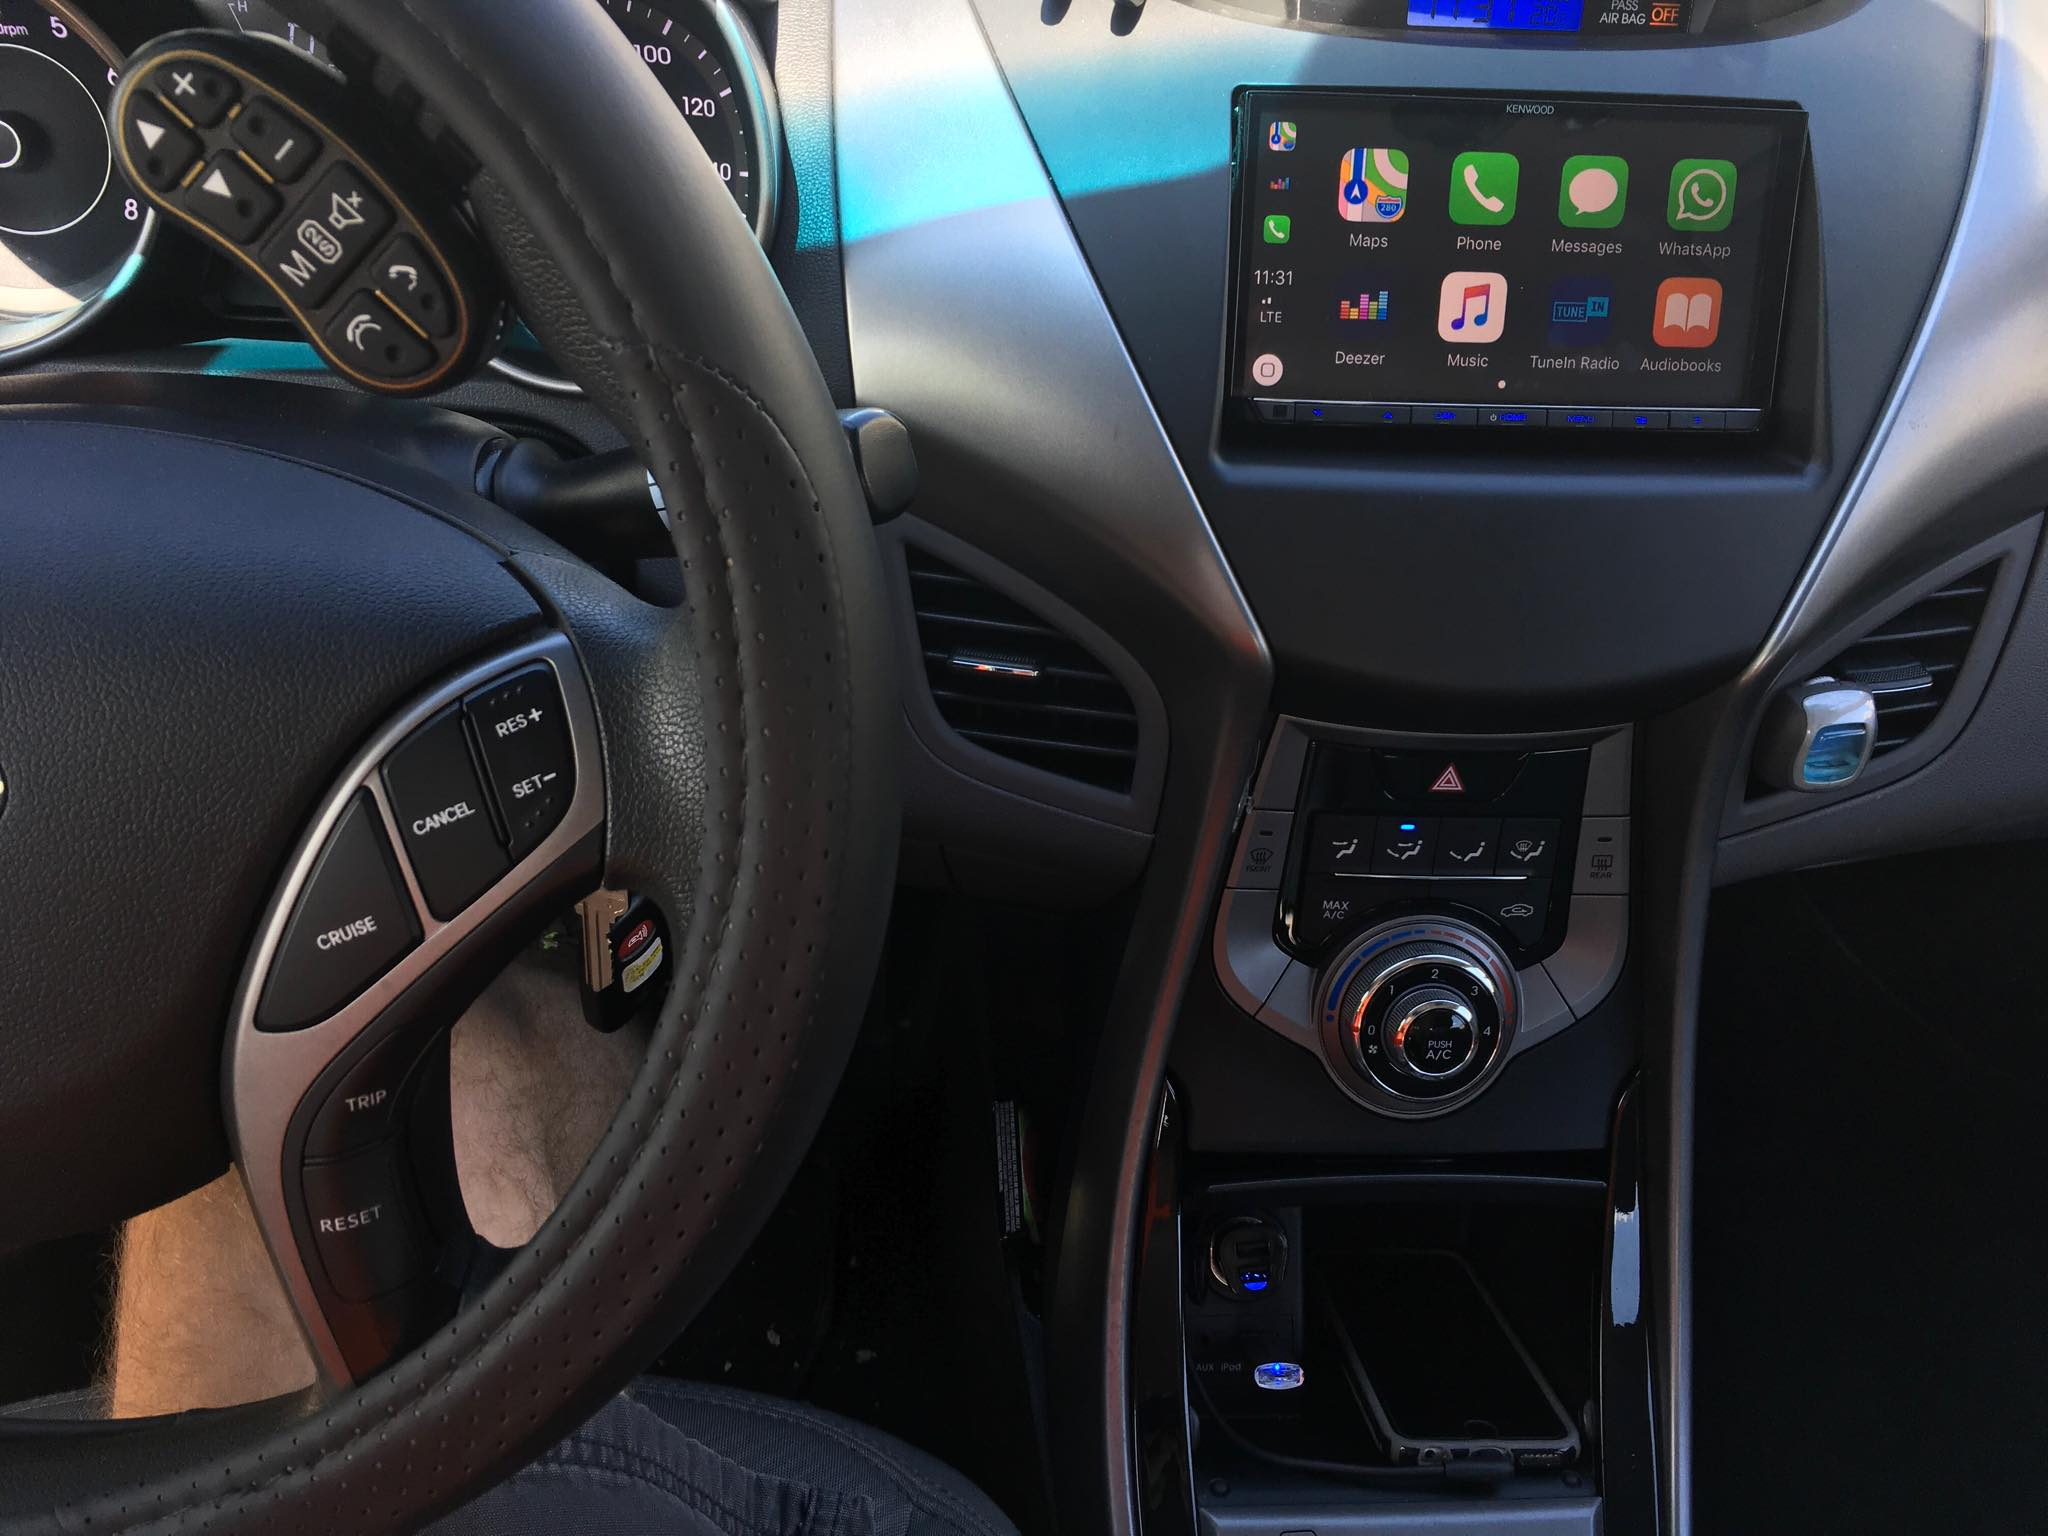 CarPlay Installs: Kenwood DDX-9704 in a 2013 Hyundai Elantra